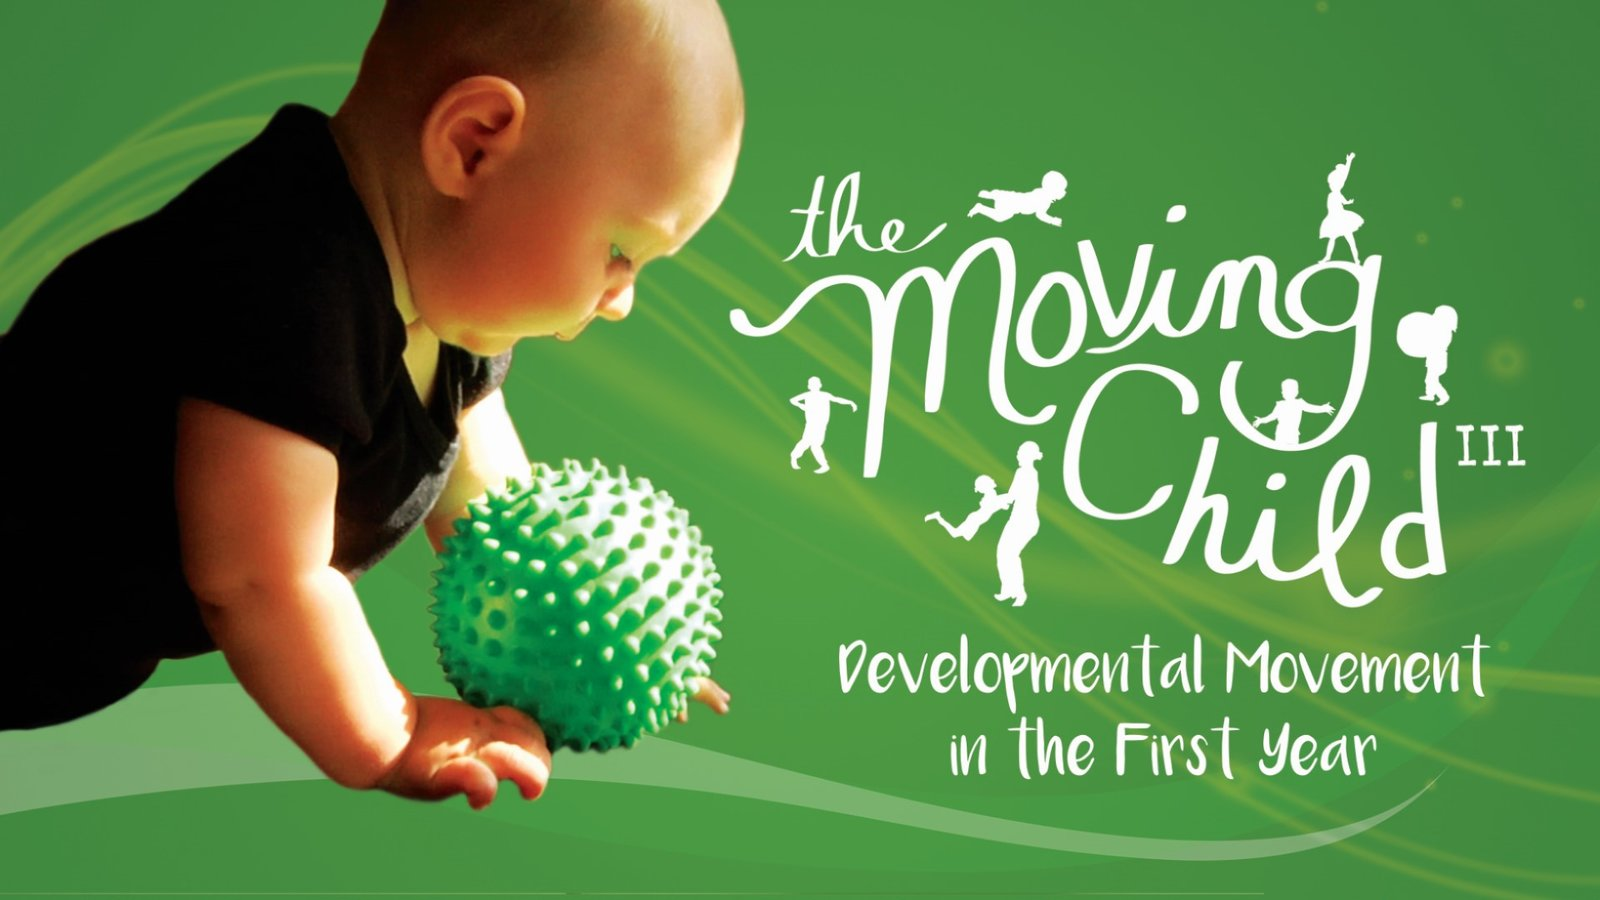 Moving Child Films III